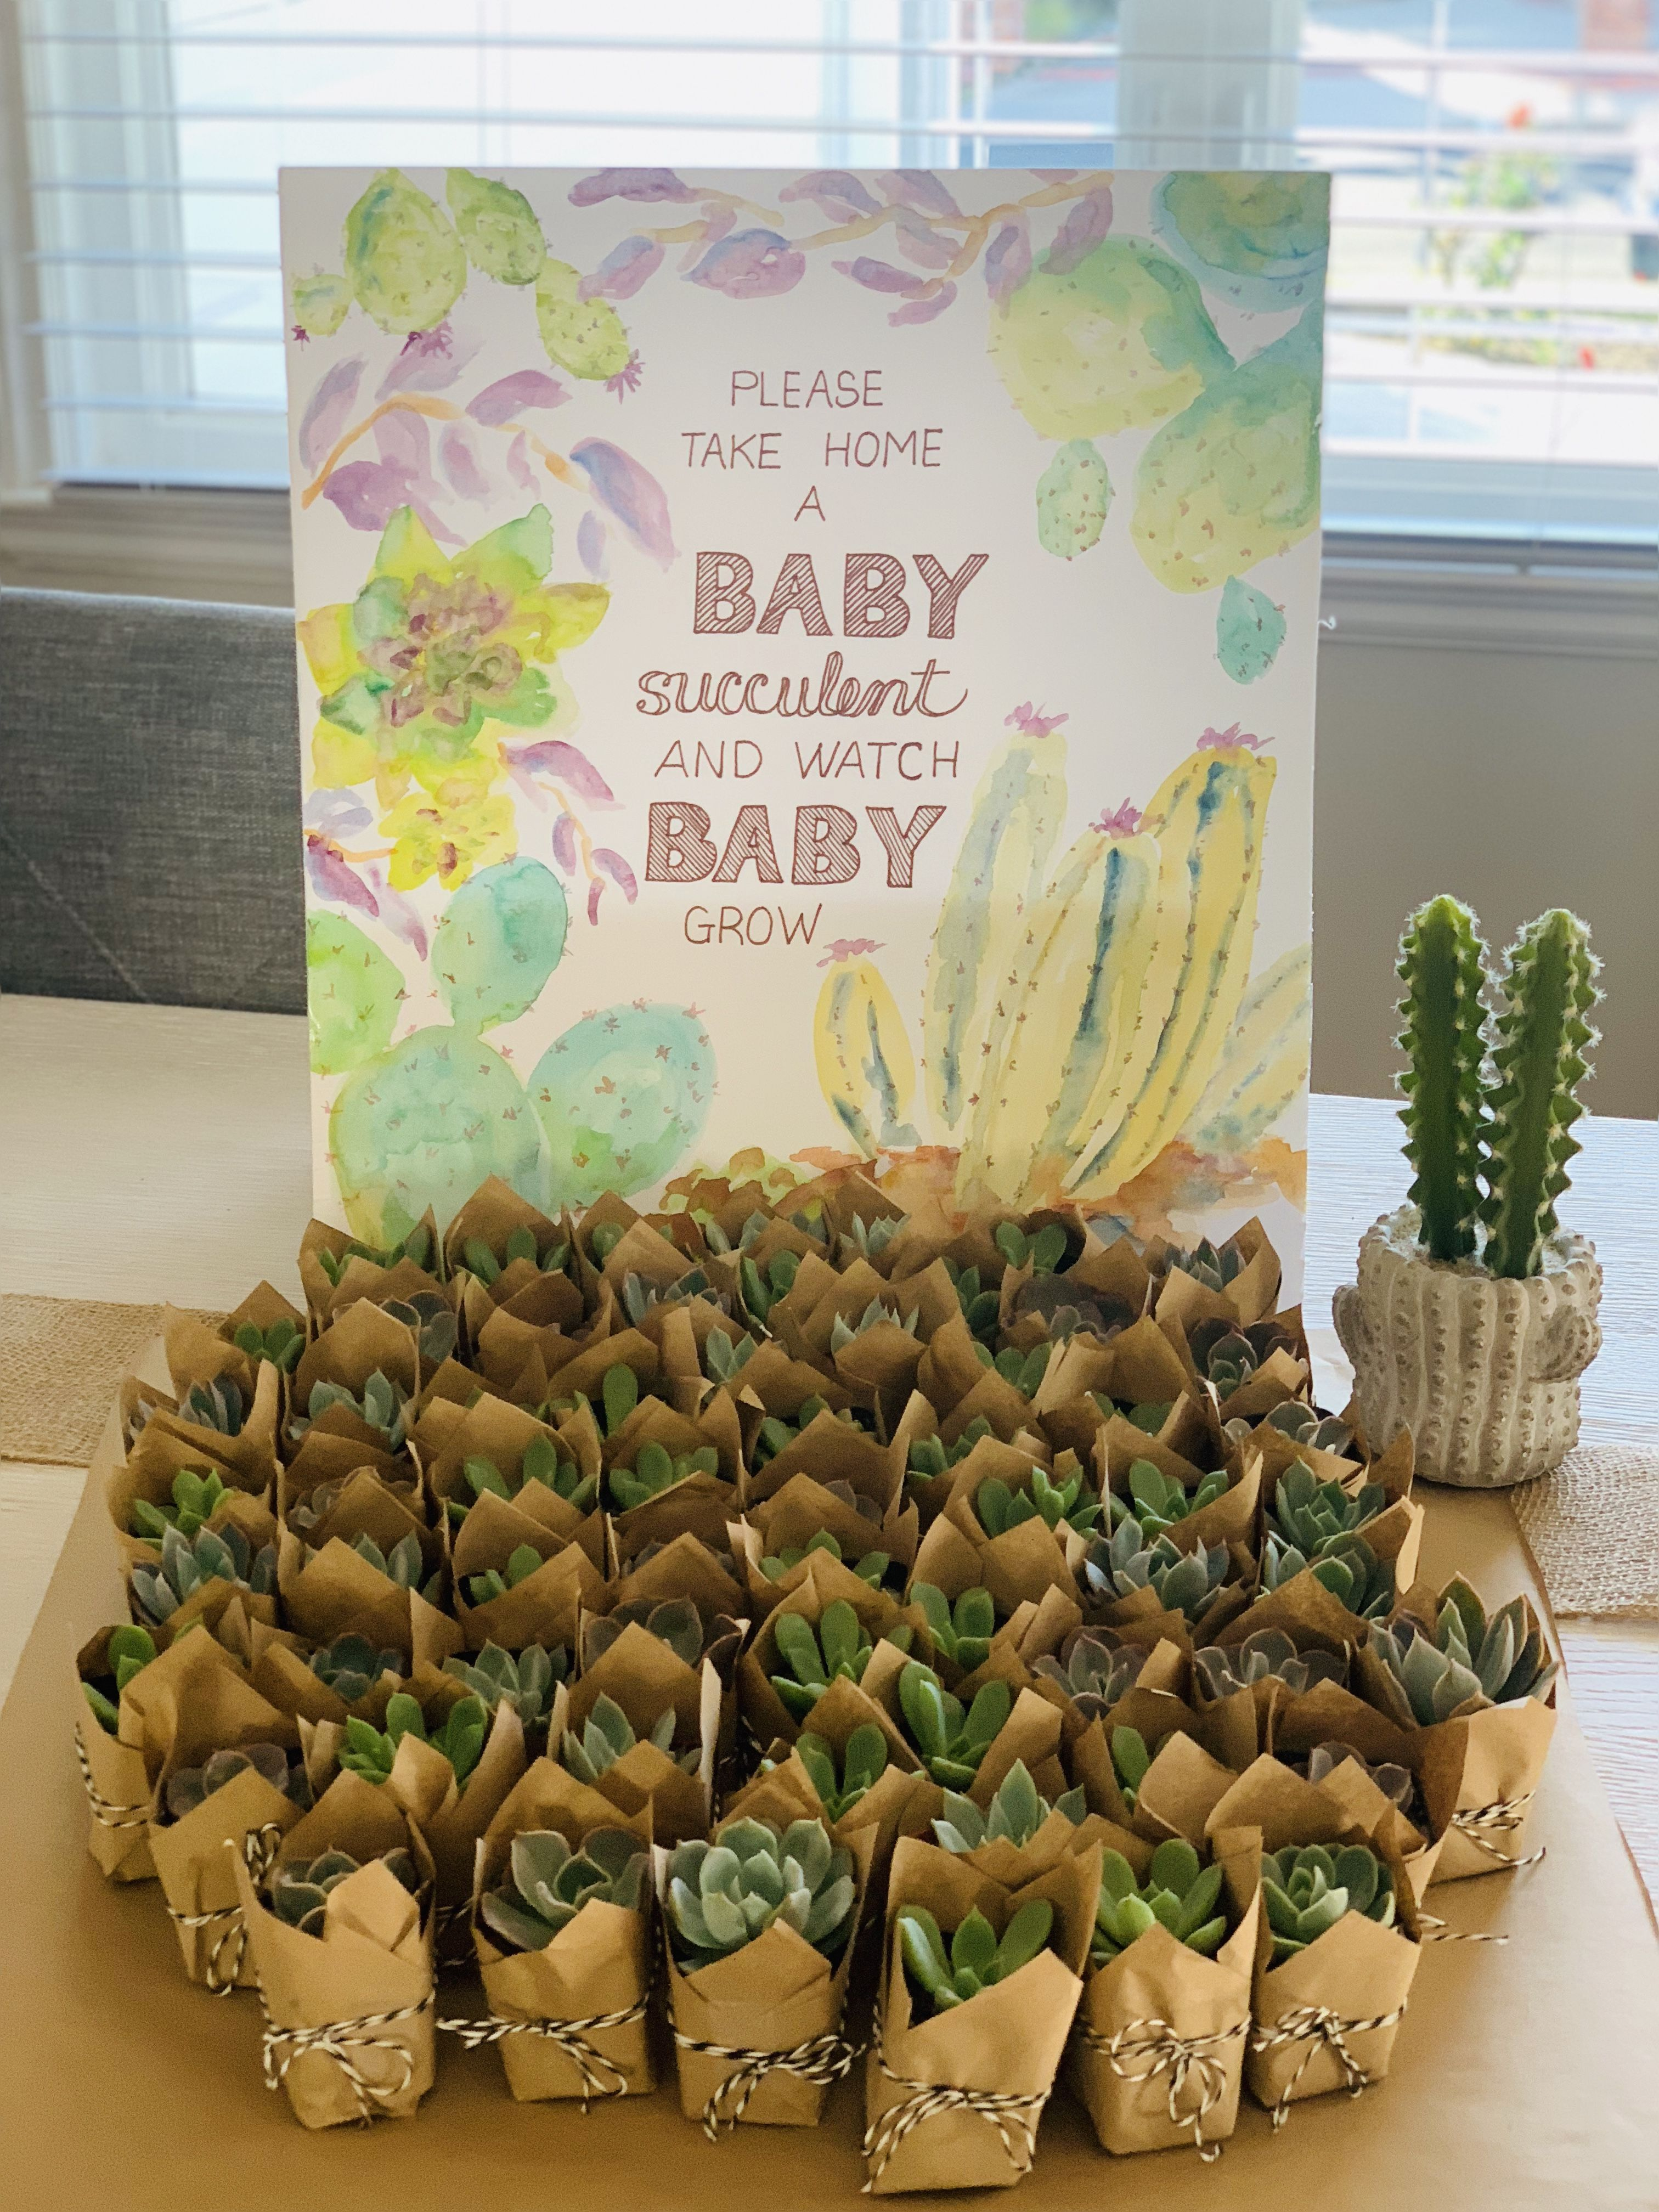 Adorable baby shower guest gifts with hand painted sign. #succulents ,  #adorable #Baby #gifts #guest #Hand #painted #shower #sign #succulents